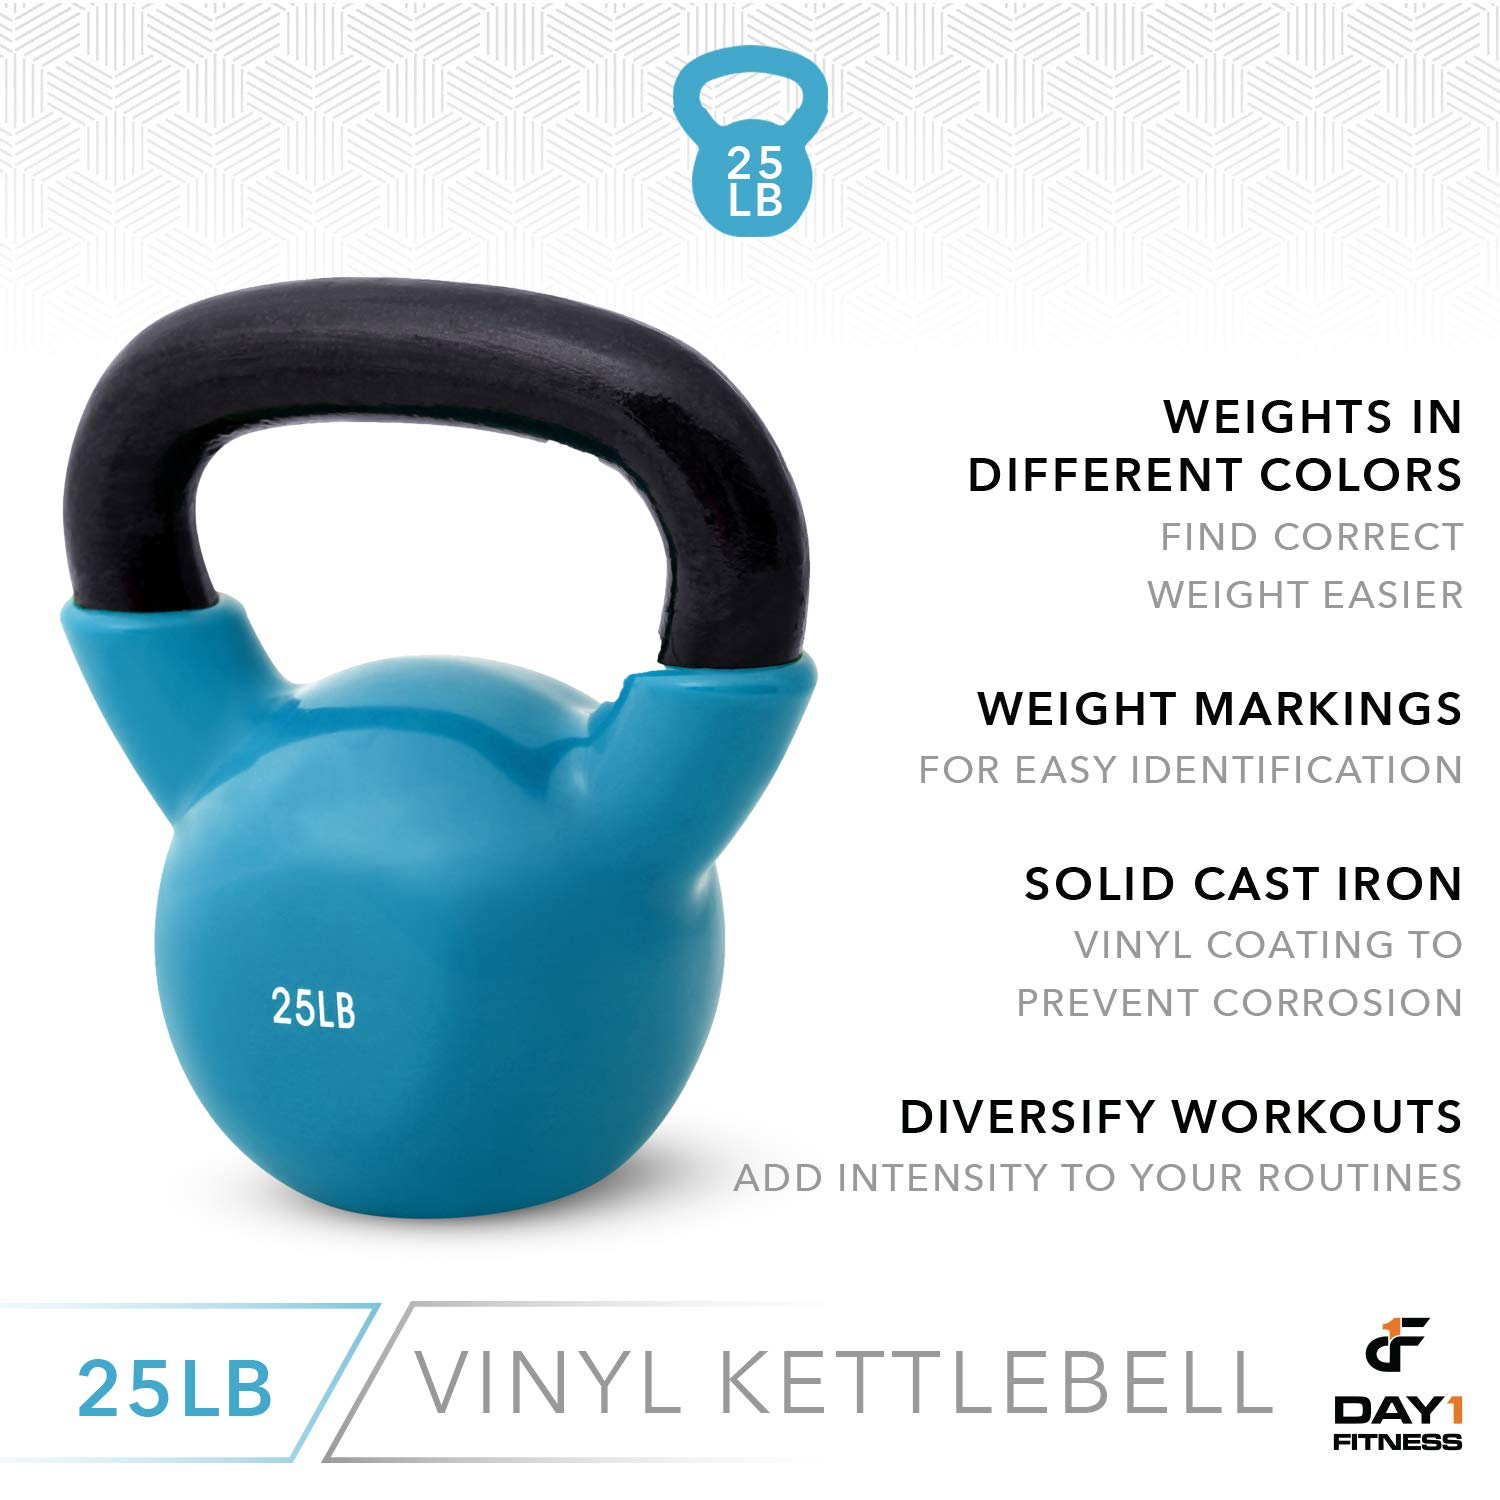 Day 1 Fitness Kettlebell Weights Vinyl Coated Iron 25 Pounds - Coated for Floor and Equipment Protection, Noise Reduction - Free Weights for Ballistic, Core, Weight Training by Day 1 Fitness (Image #5)